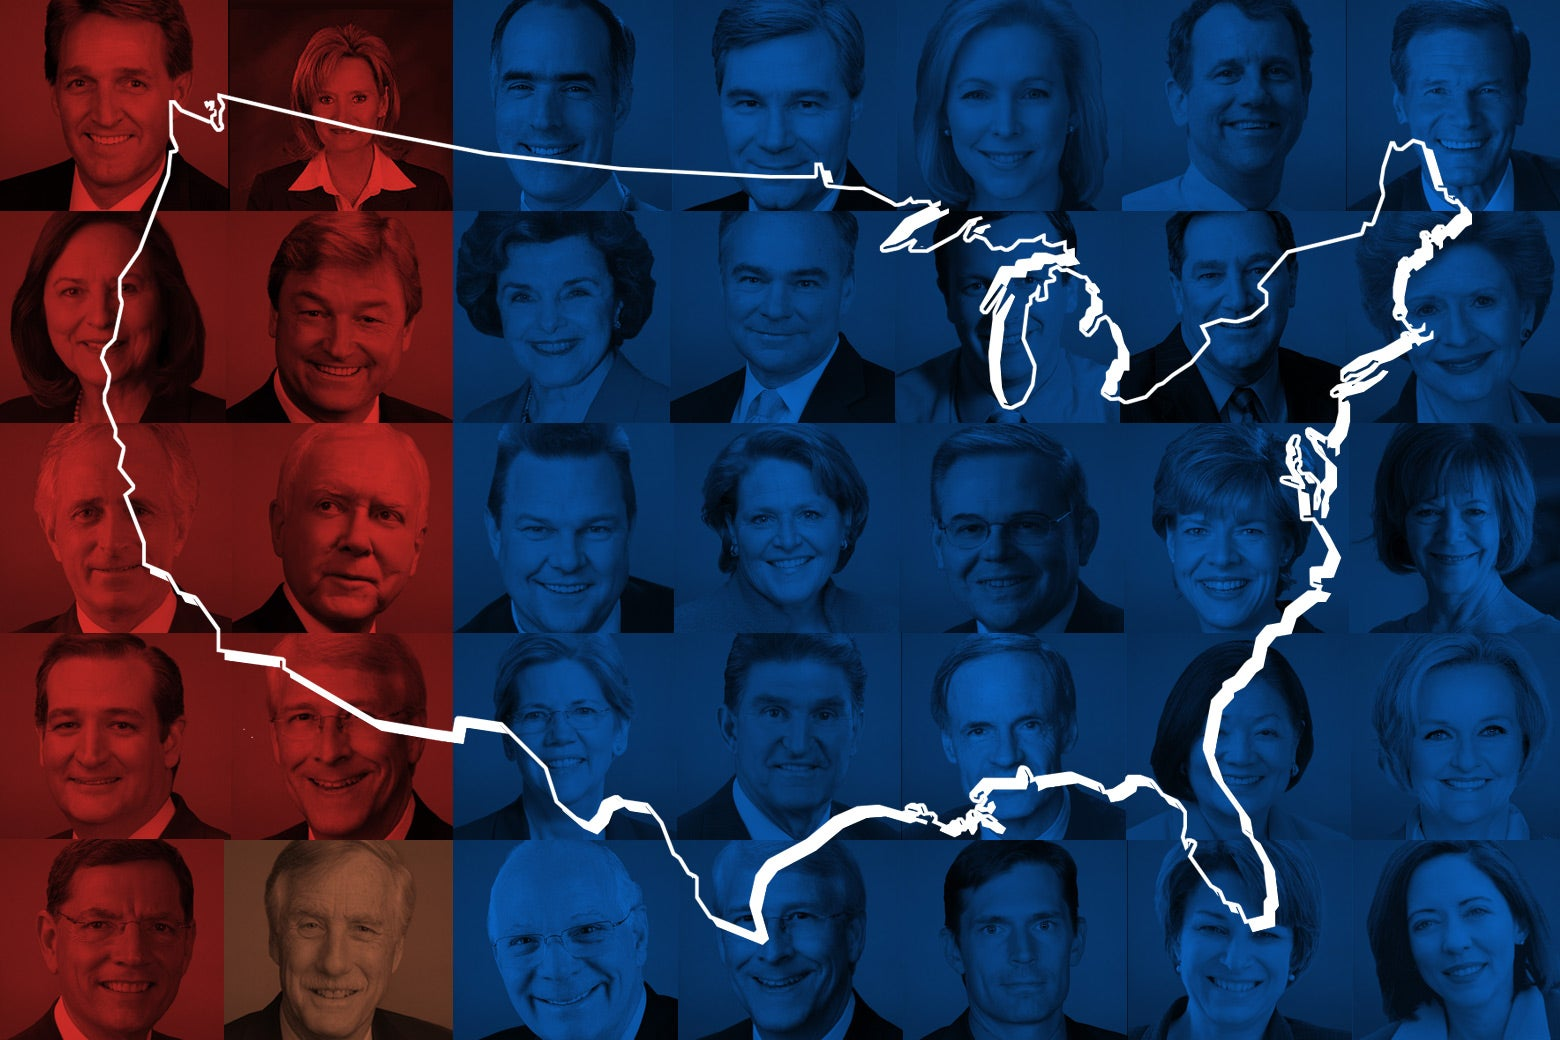 Faces of 2018 midterms winners shaded red or blue according to party affiliation, over a map of the U.S.